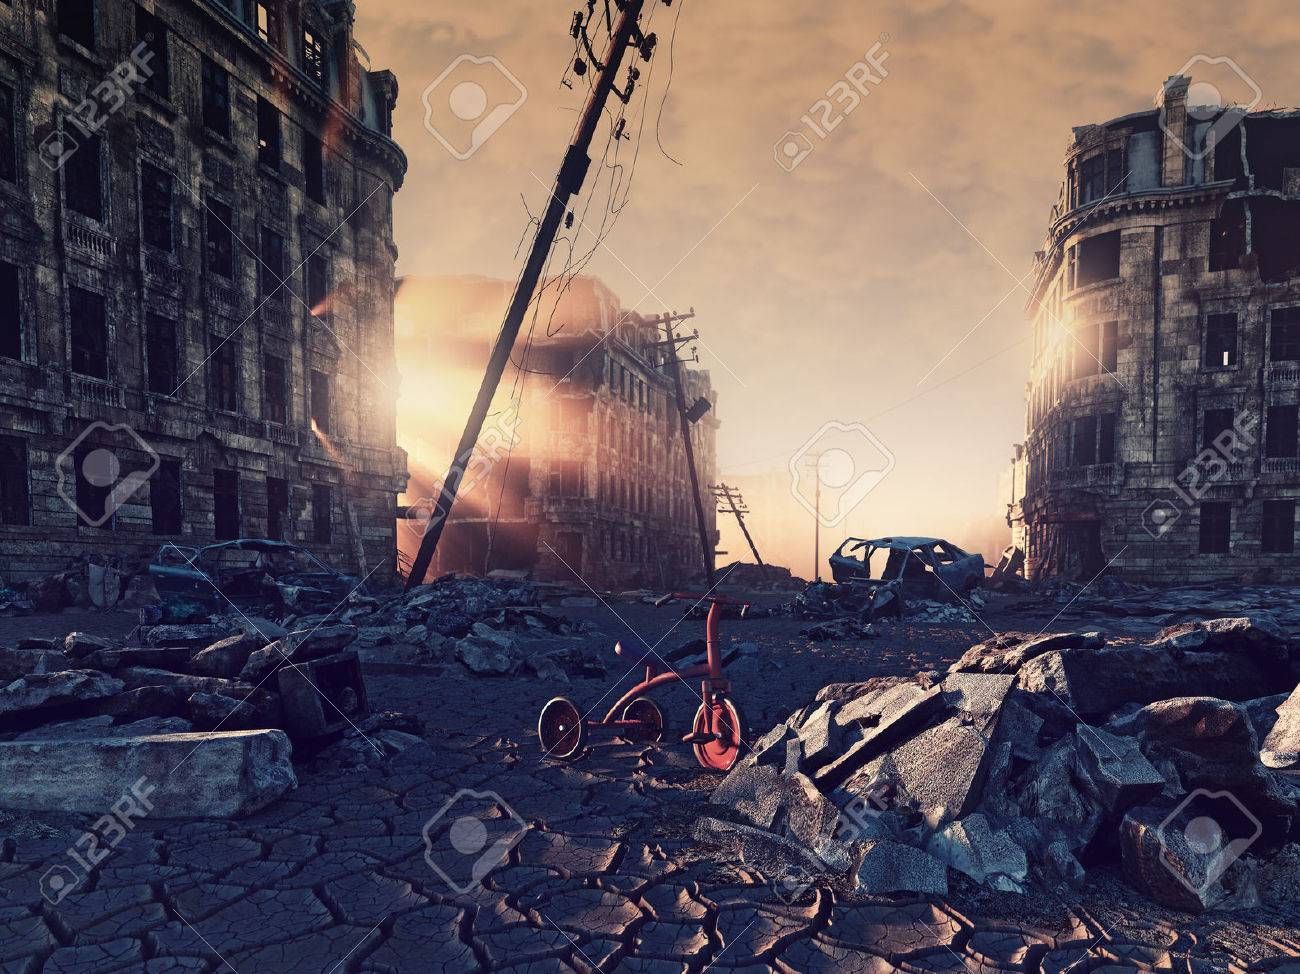 ruins of a city with a crack in the street. 3d illustration concept Standard-Bild - 64633955